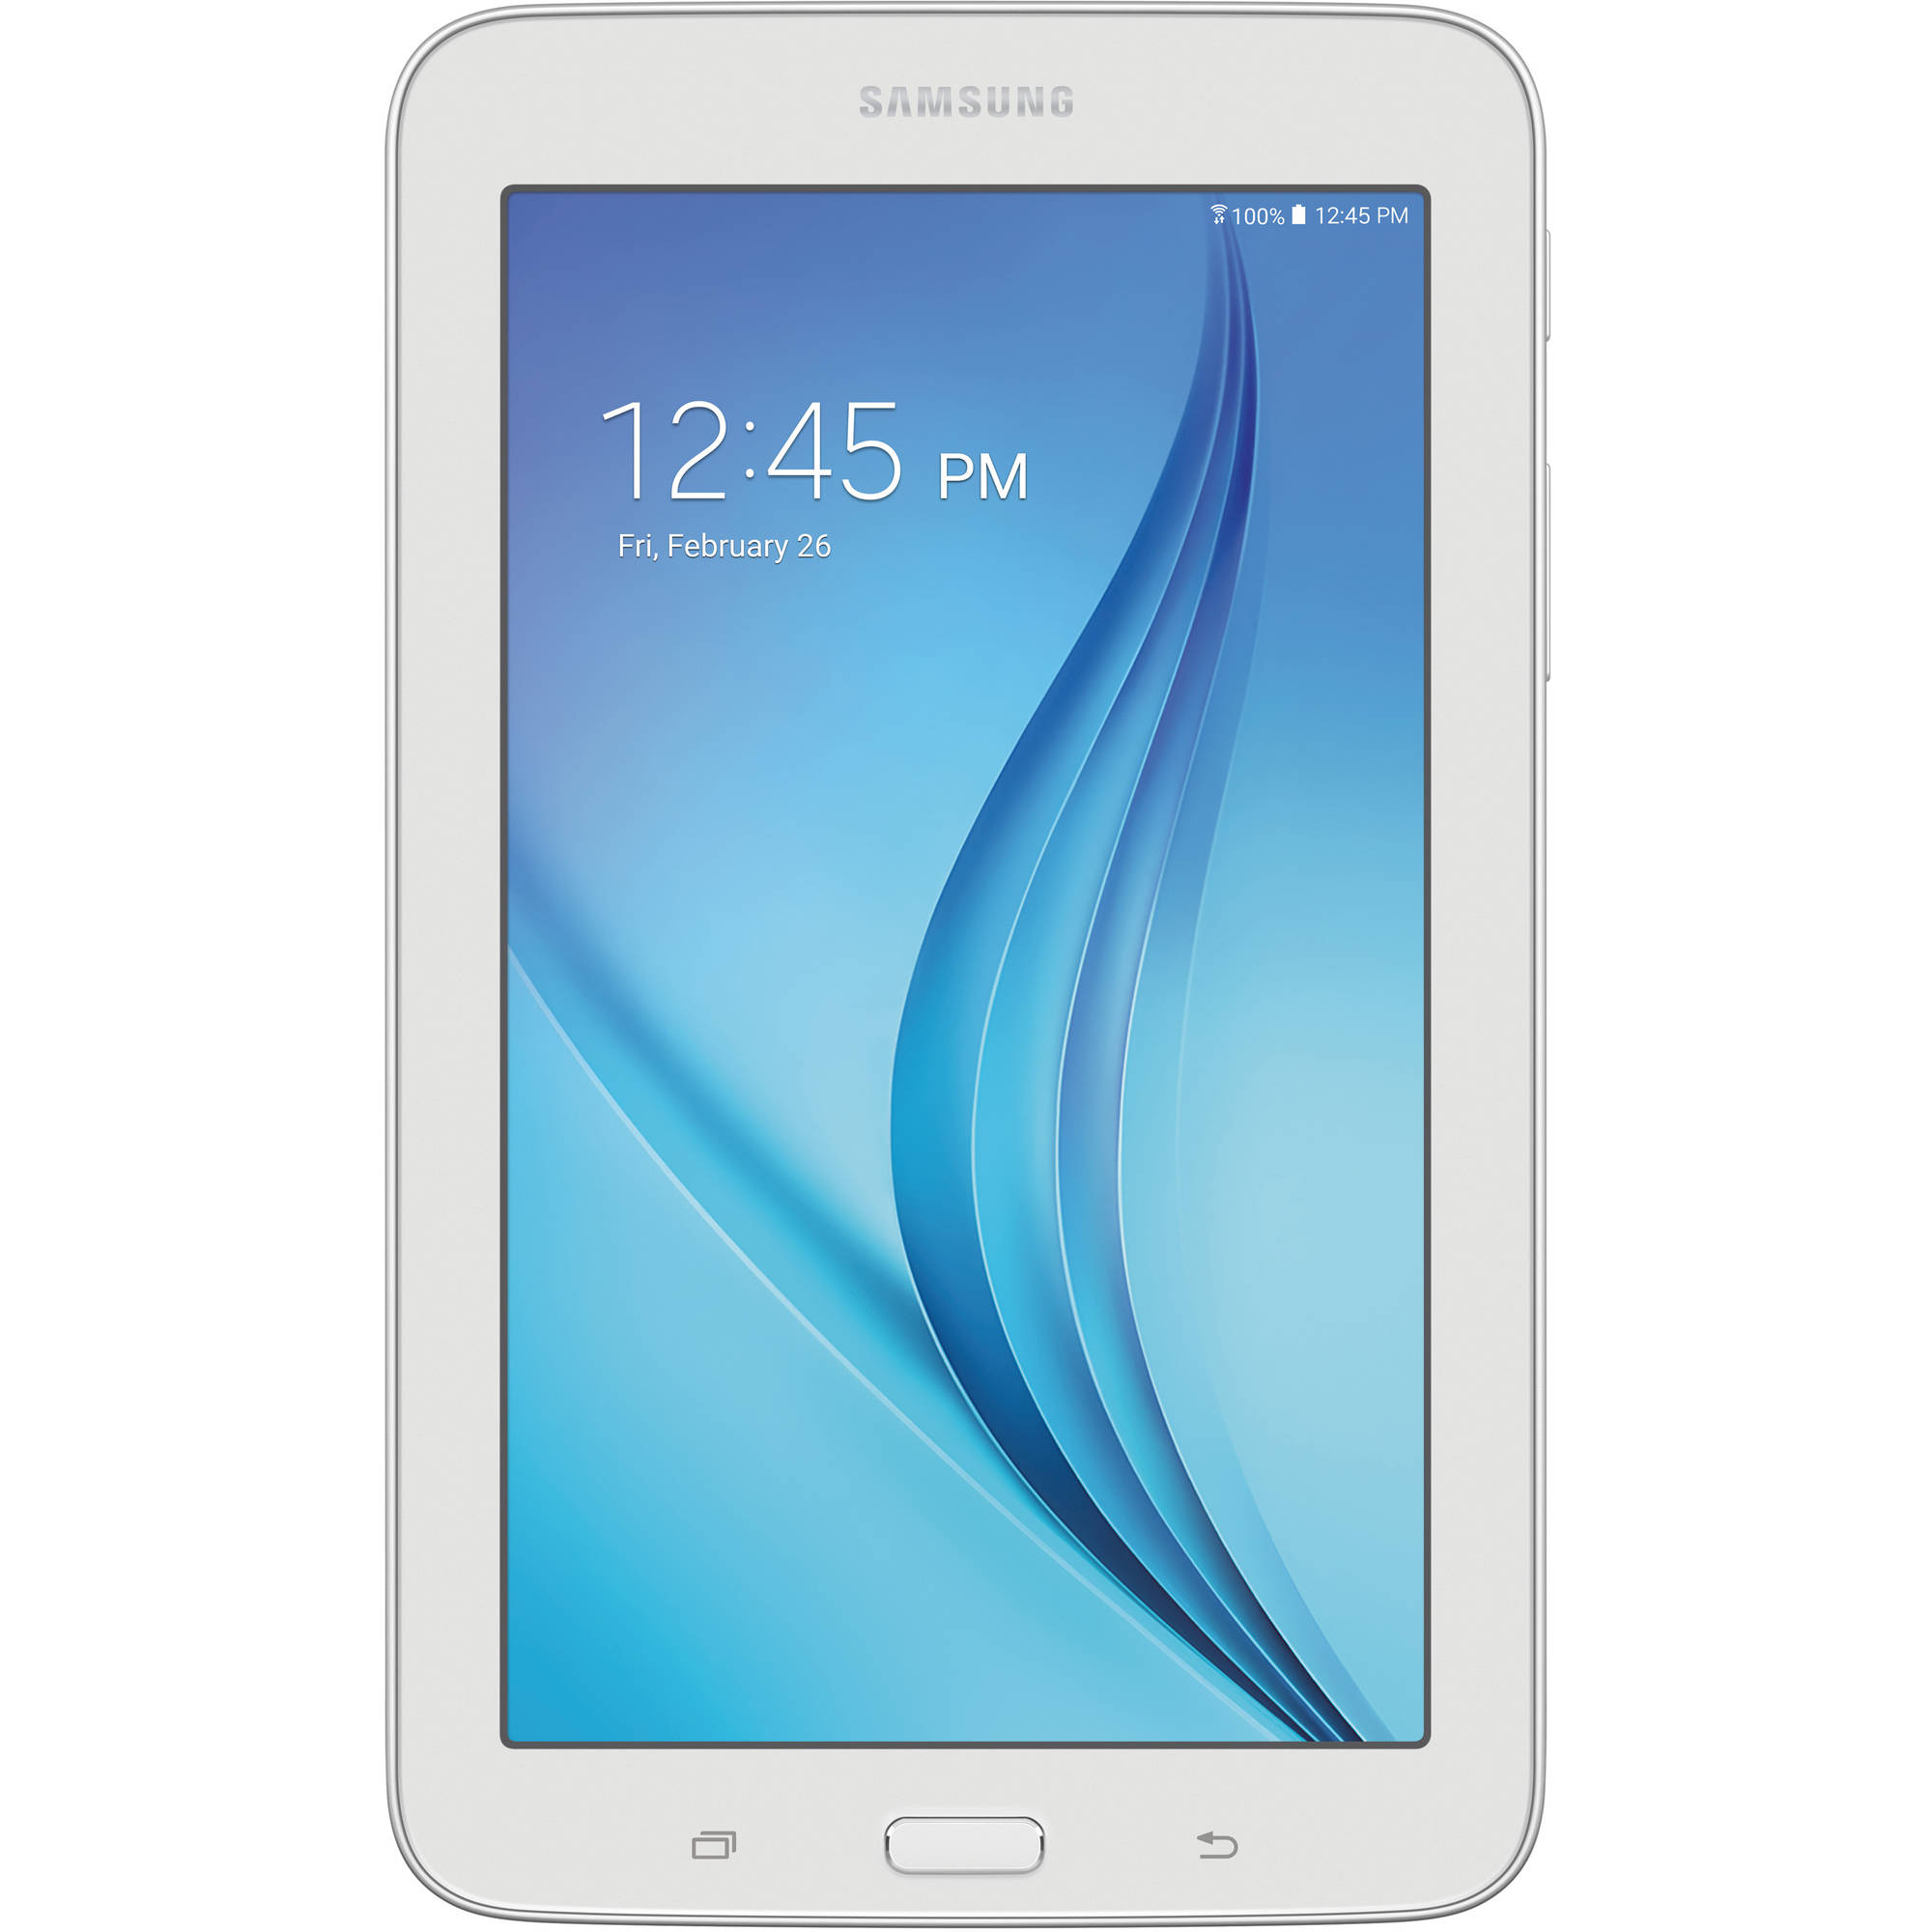 "Refurbished Samsung Galaxy Tab E Lite with WiFi 7.0"" Touchscreen Tablet PC Featuring Android 4.4 (KitKat) Operating System"